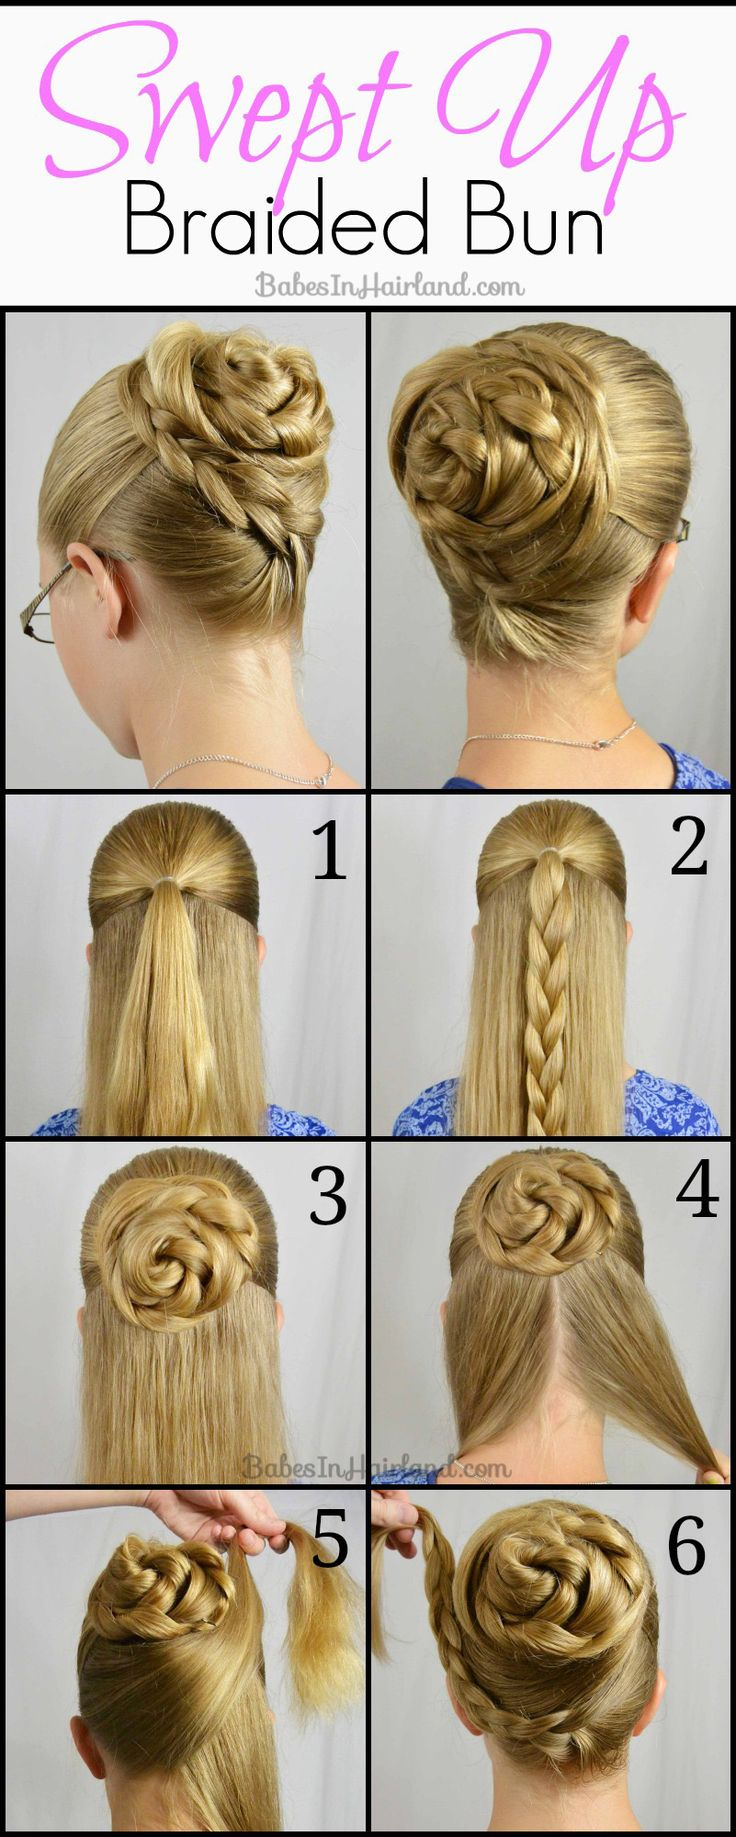 This Swept Up Braided Bun from BabesInHairland.com can be done in just minutes! It looks so easy too!